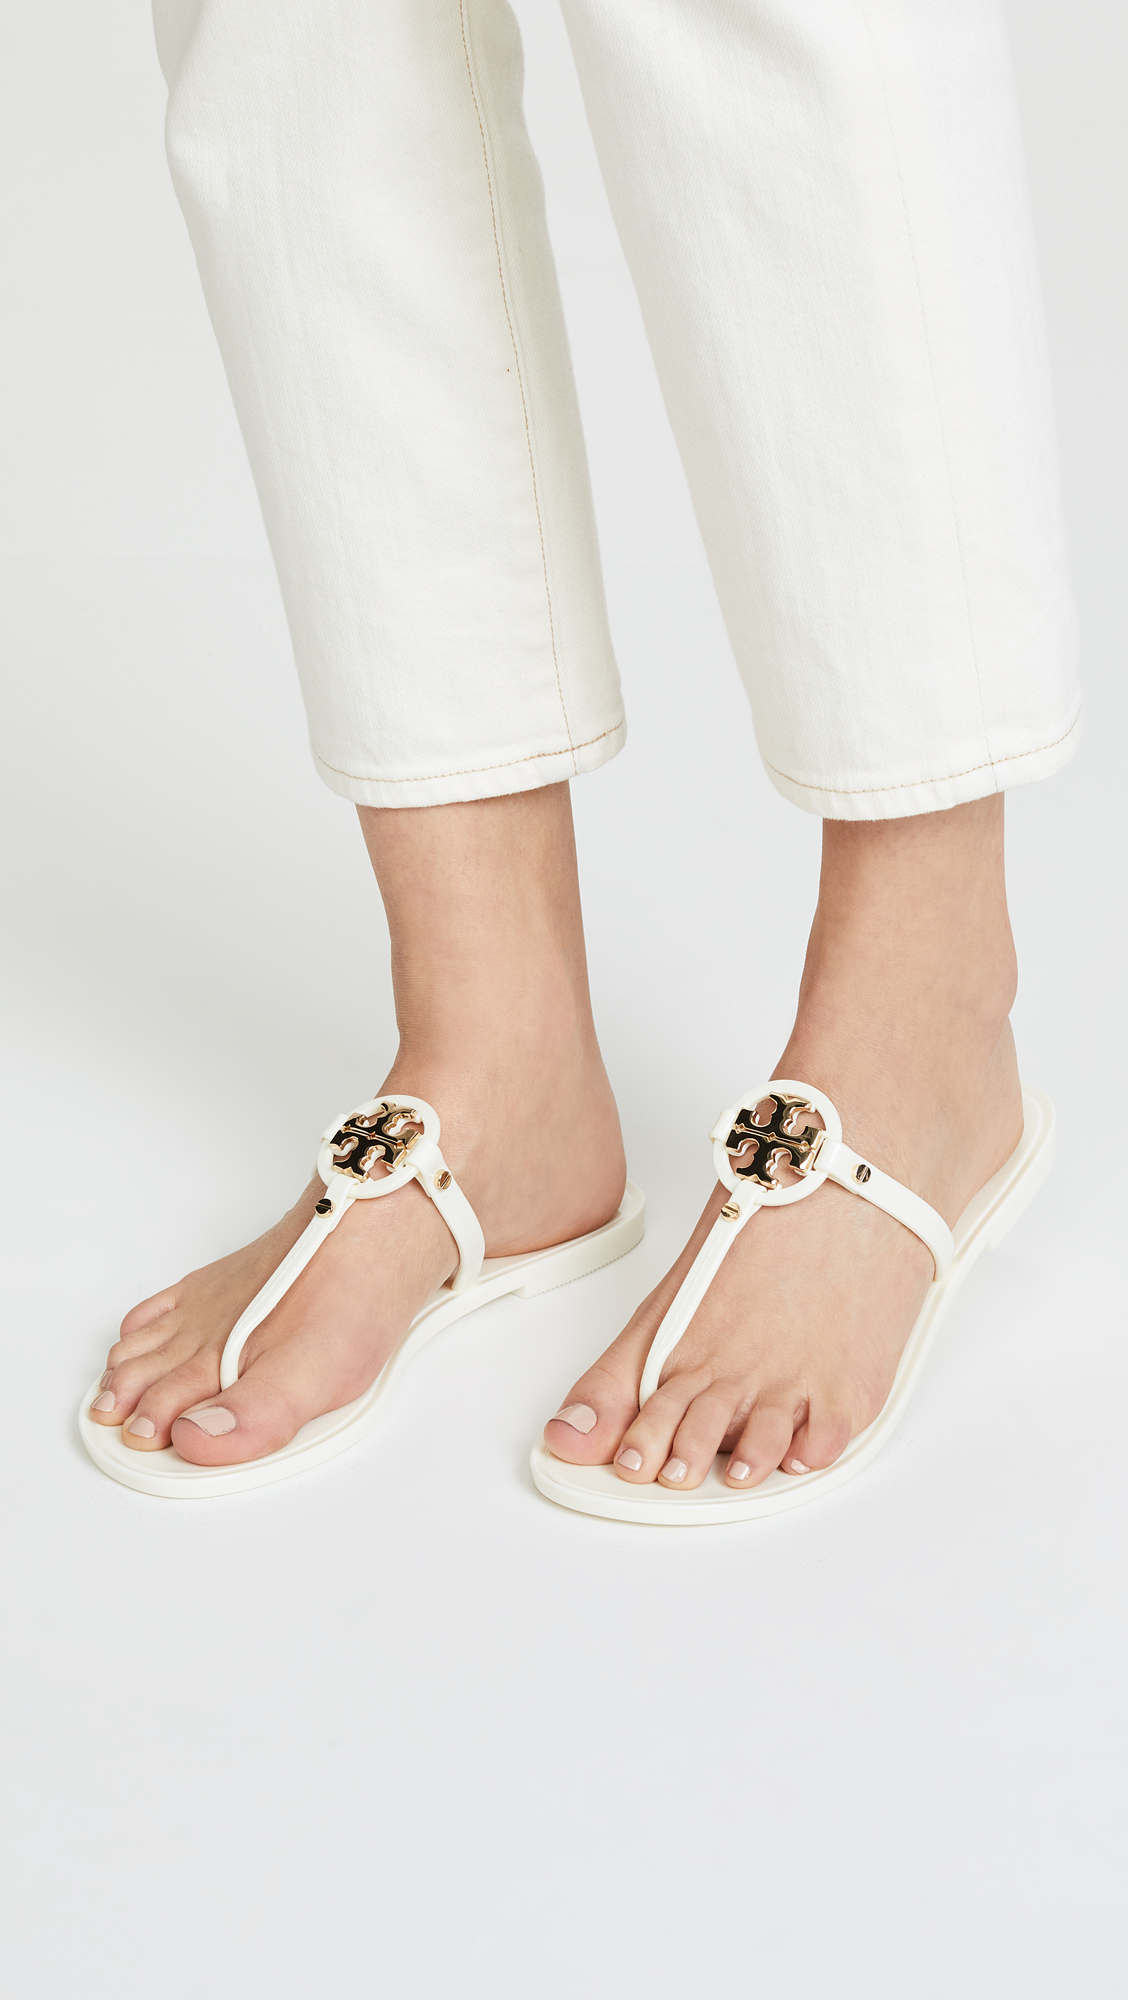 6bb7664261e5 Tory Burch Mini Miller Flip Flops